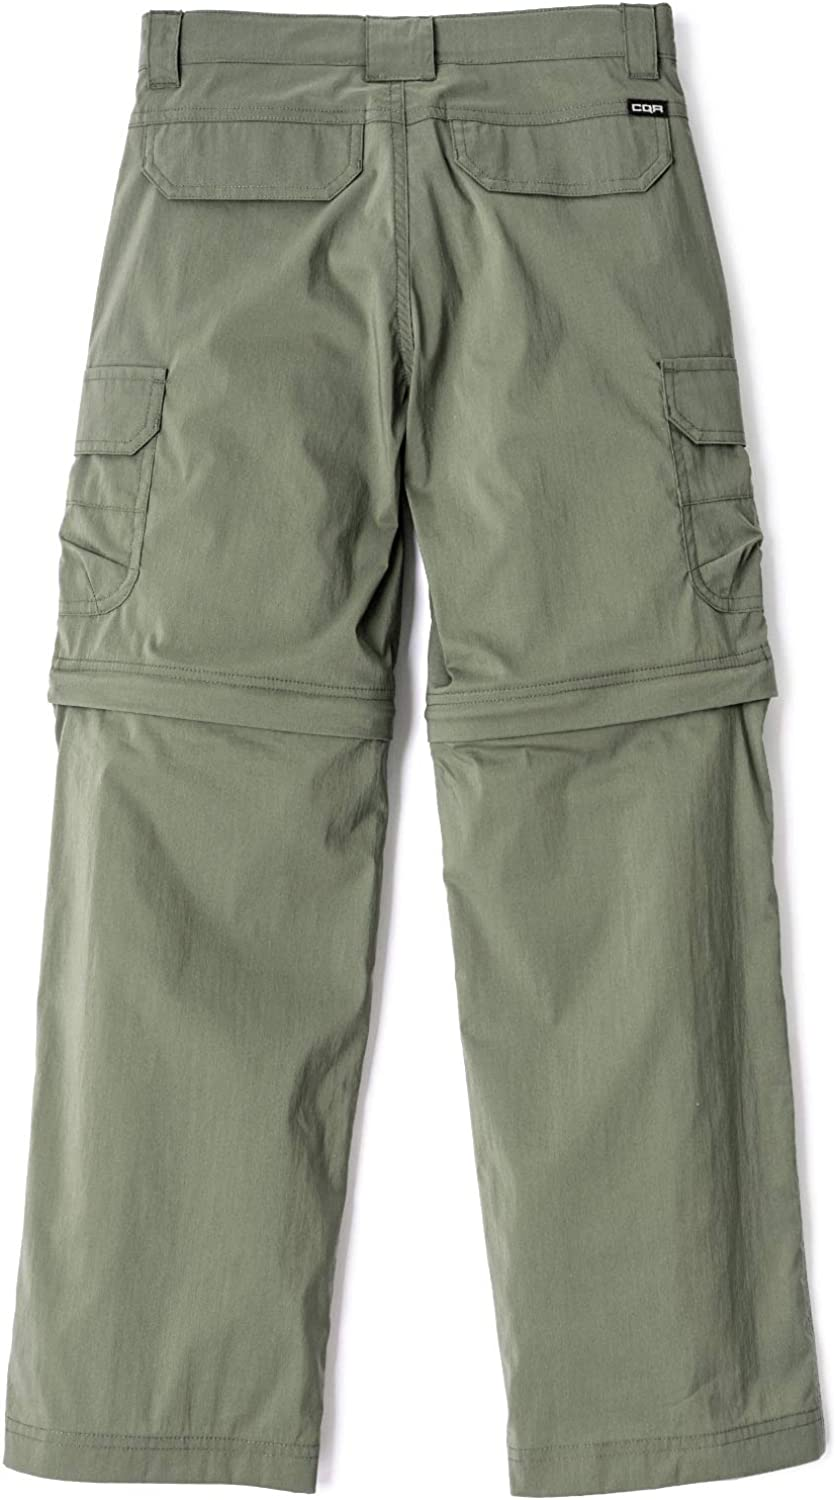 Quick Dry Cargo Trousers CQR Kids Boys and Girls Pants Youth Hiking Adventure Convertible Zip Off Stretch Camping UPF 50